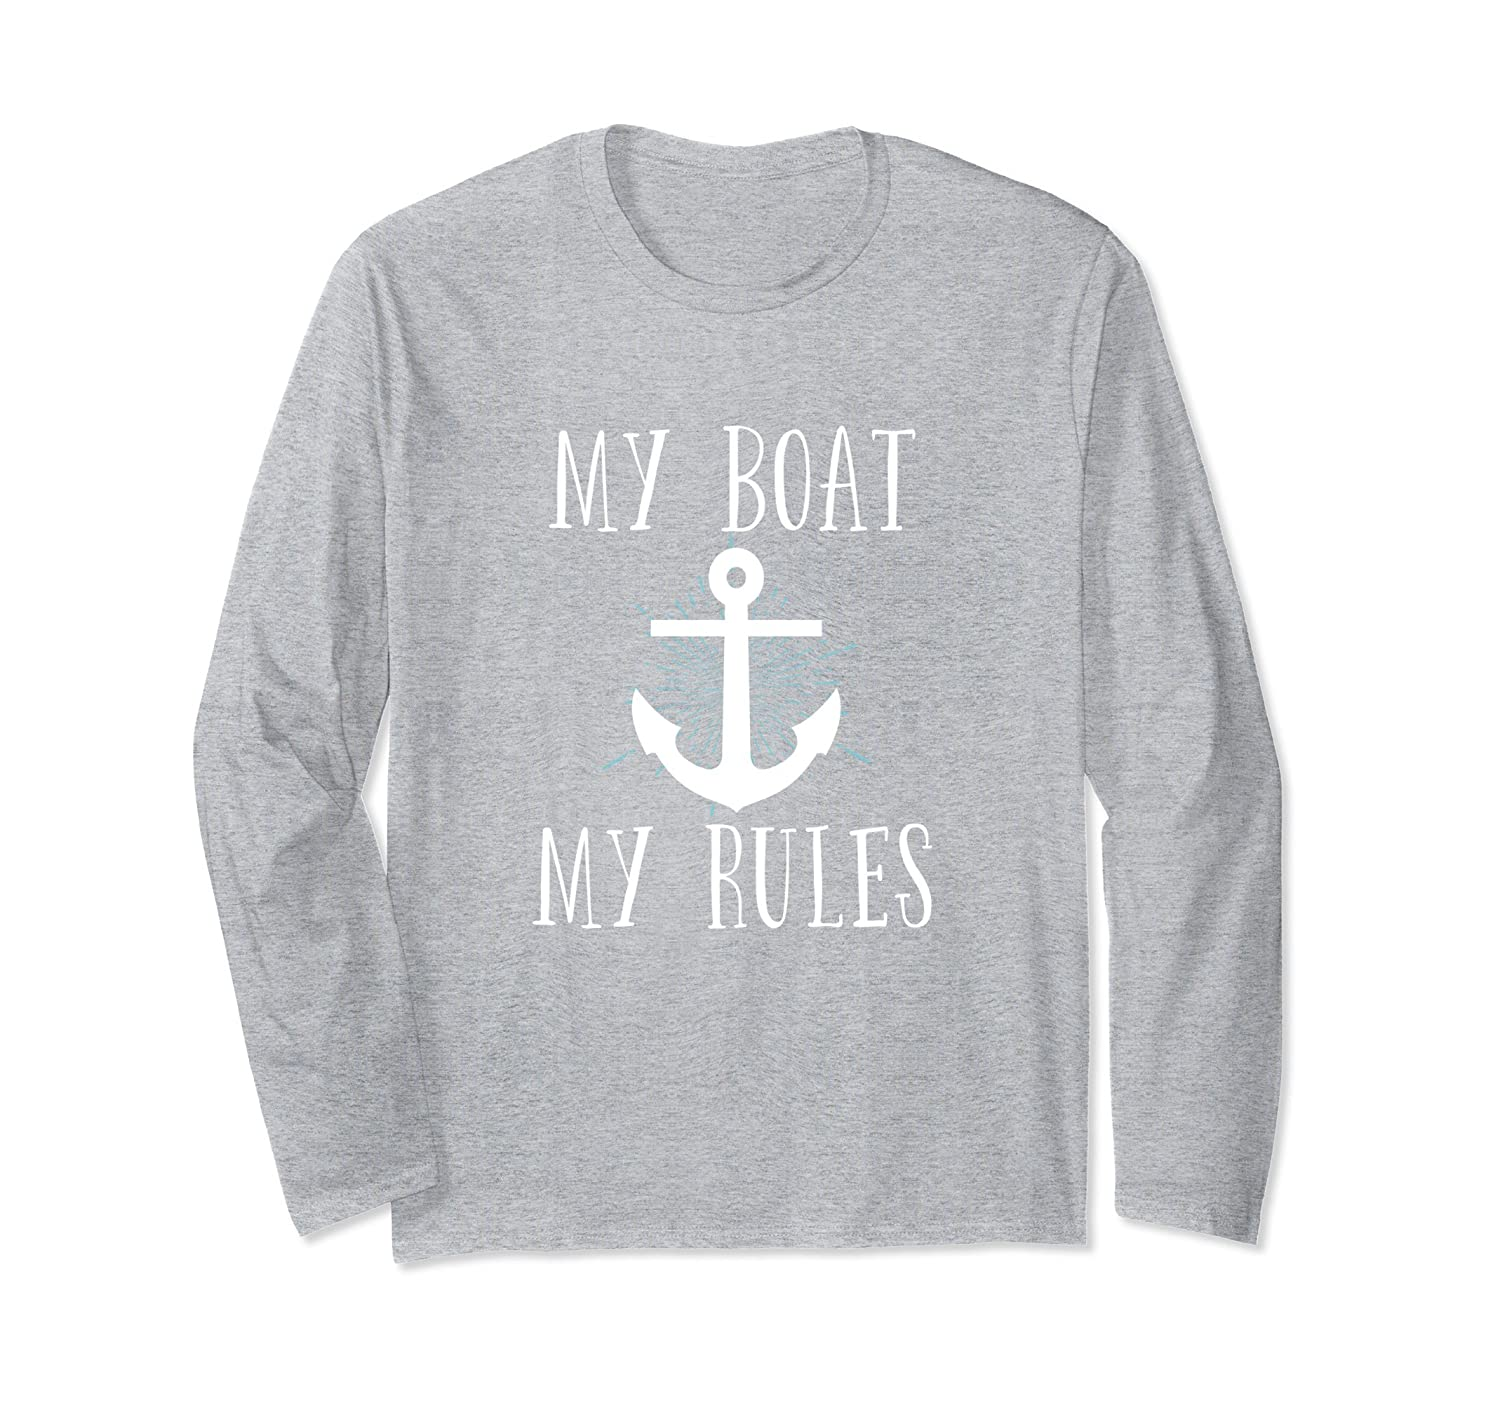 17370499b8 Funny Sailing T-Shirt My Boat My Rules-alottee gift - Alottee